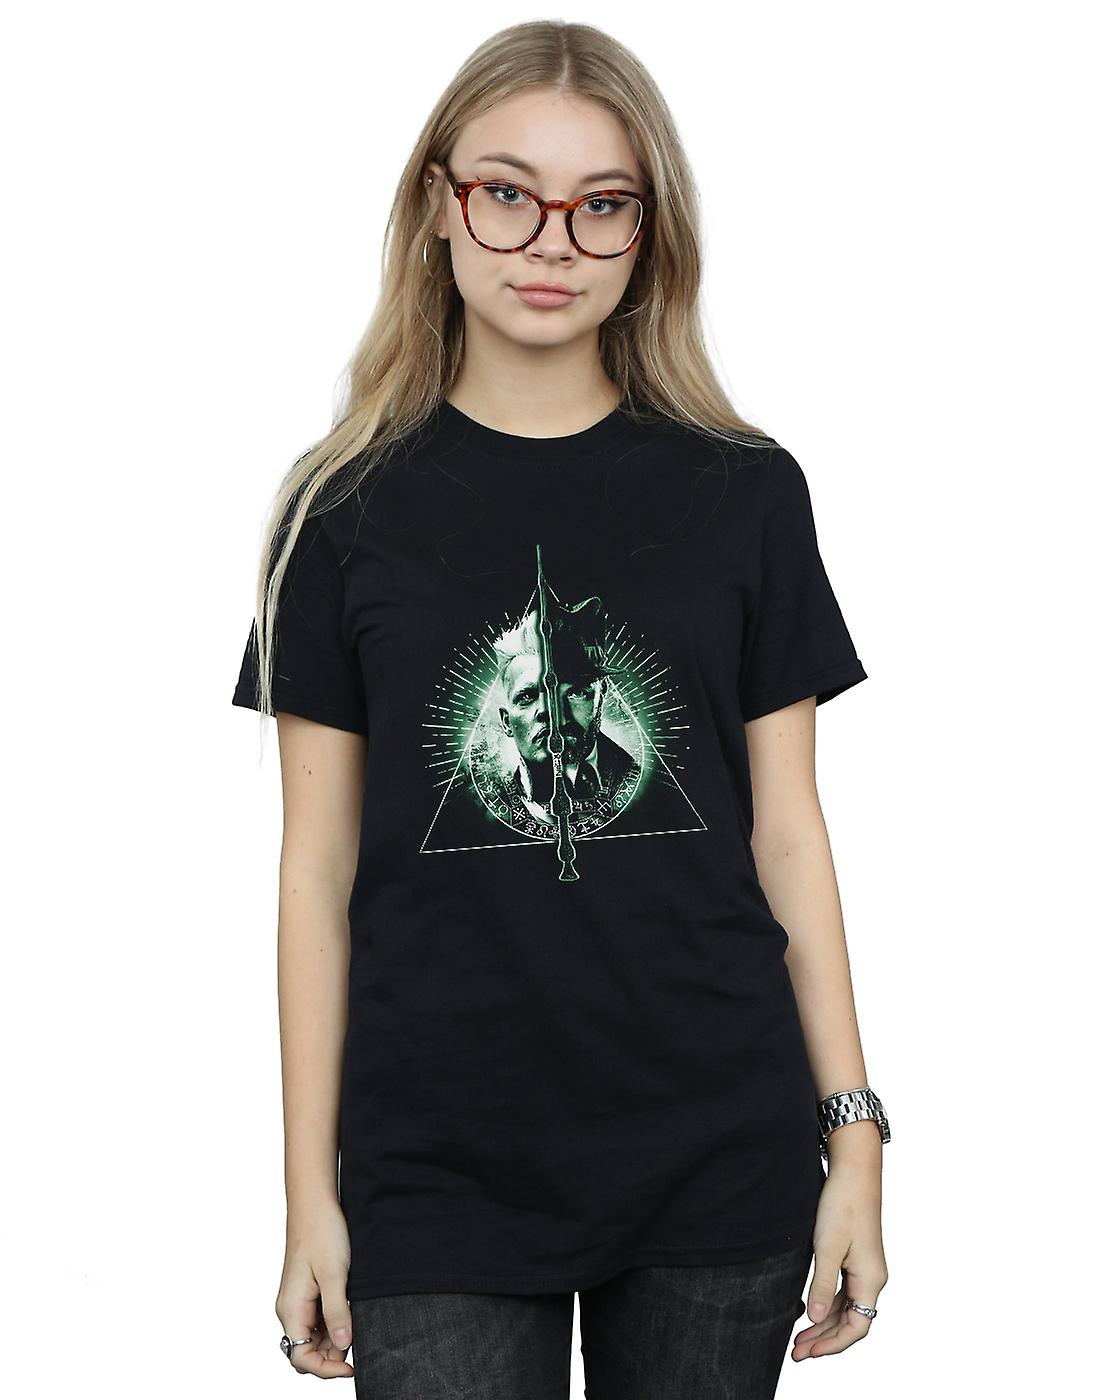 Fantastic Beasts Women's Dumbledore Vs Grindelwald Boyfriend Fit T-Shirt